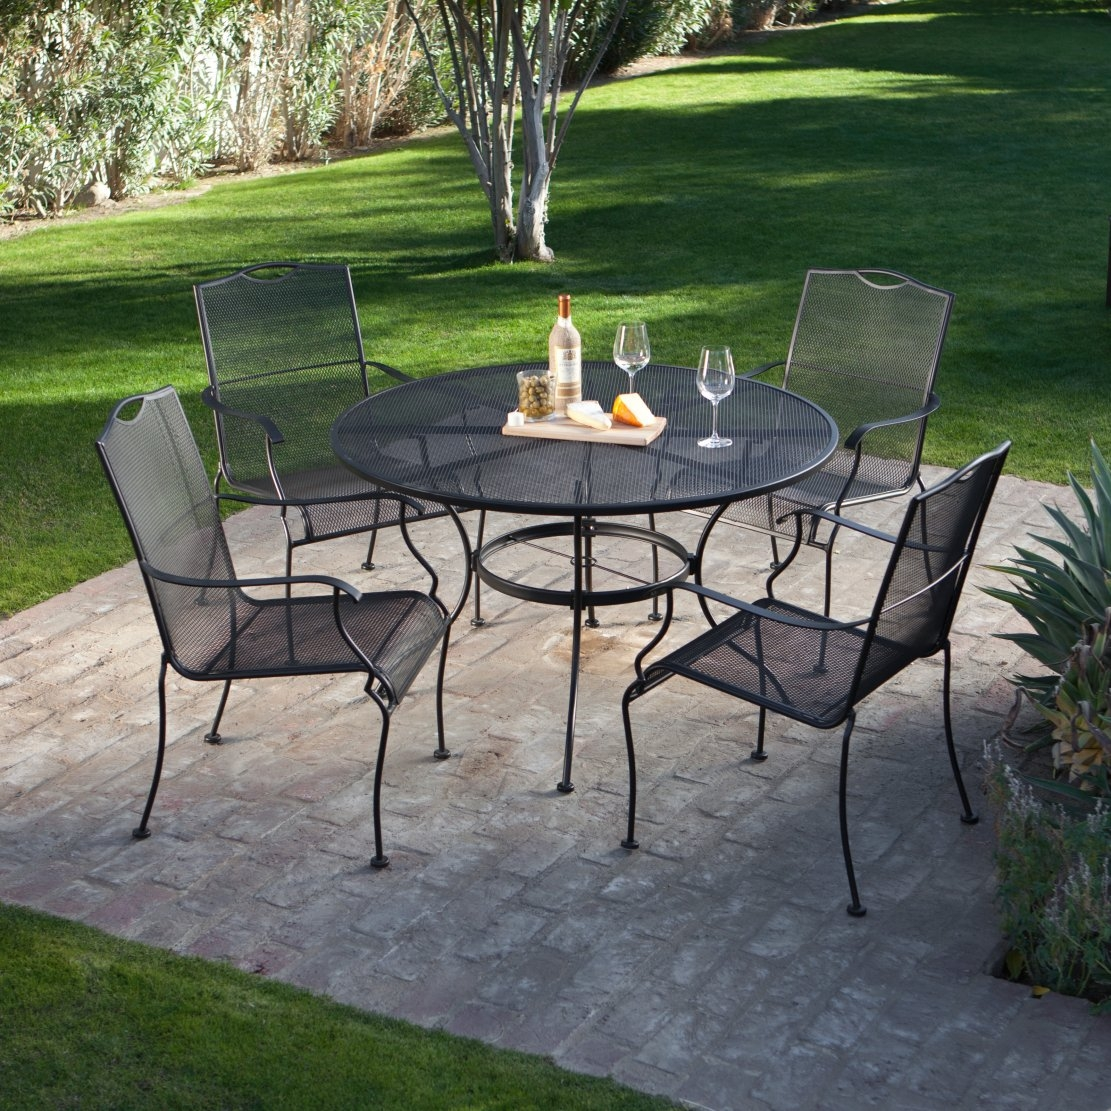 5-Piece Wrought Iron Patio Furniture Dining Set - Seats 4 & 5-Piece Wrought Iron Patio Furniture Dining Set - Seats 4 ...